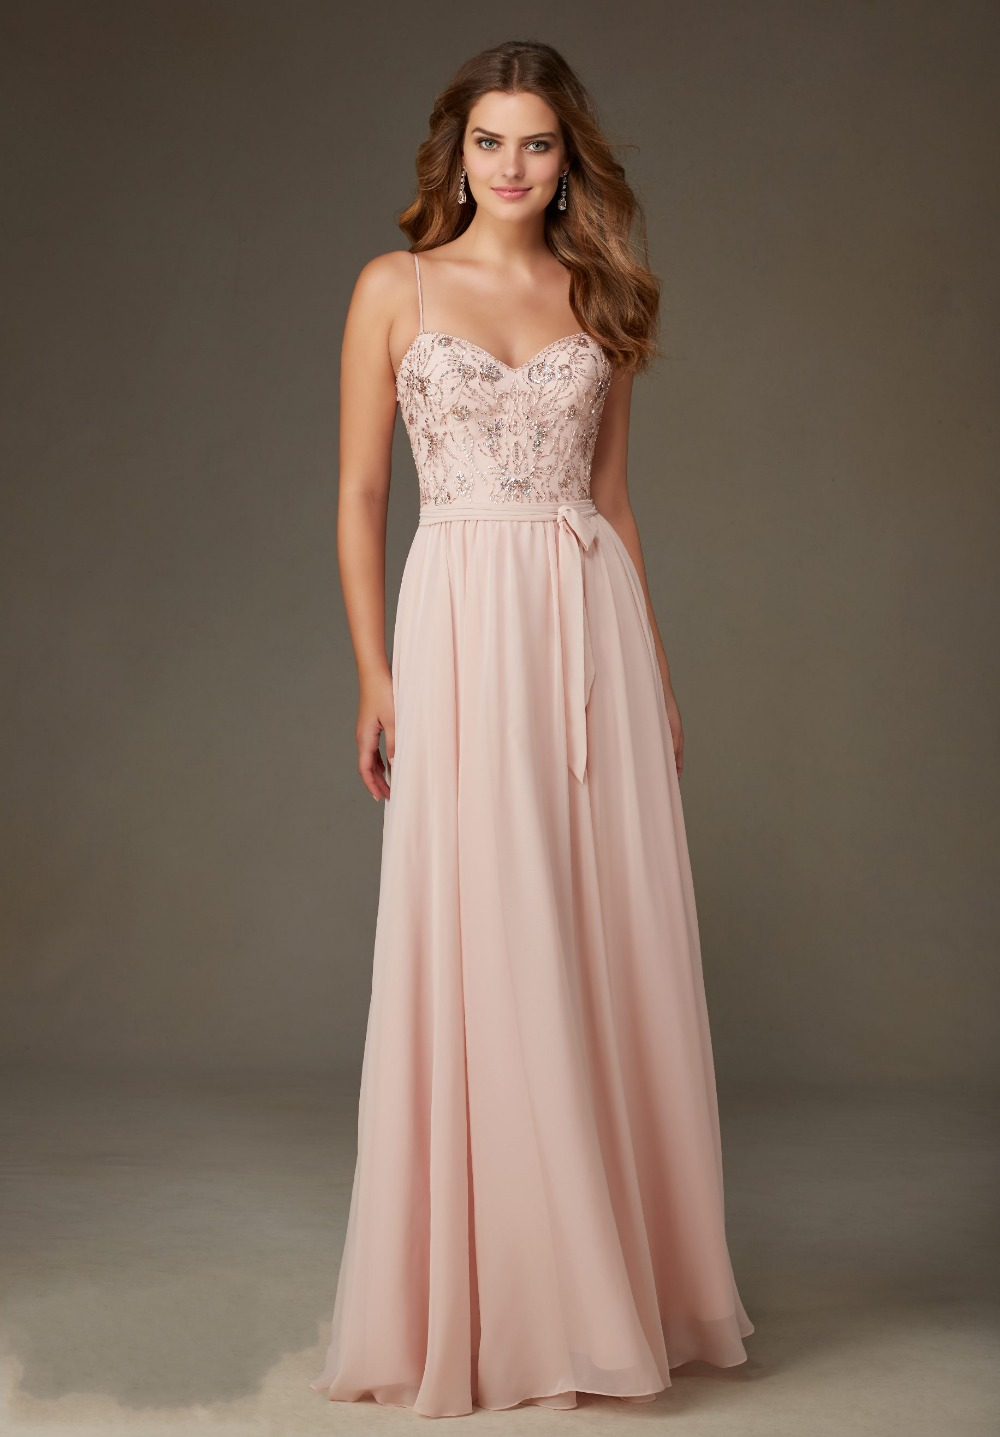 Chiffon long blush pink bridesmaid dresses 2016 sweetheart chiffon long blush pink bridesmaid dresses 2016 sweetheart spaghetti straps beading crystal sequins ribbon backless party dress in bridesmaid dresses from ombrellifo Images